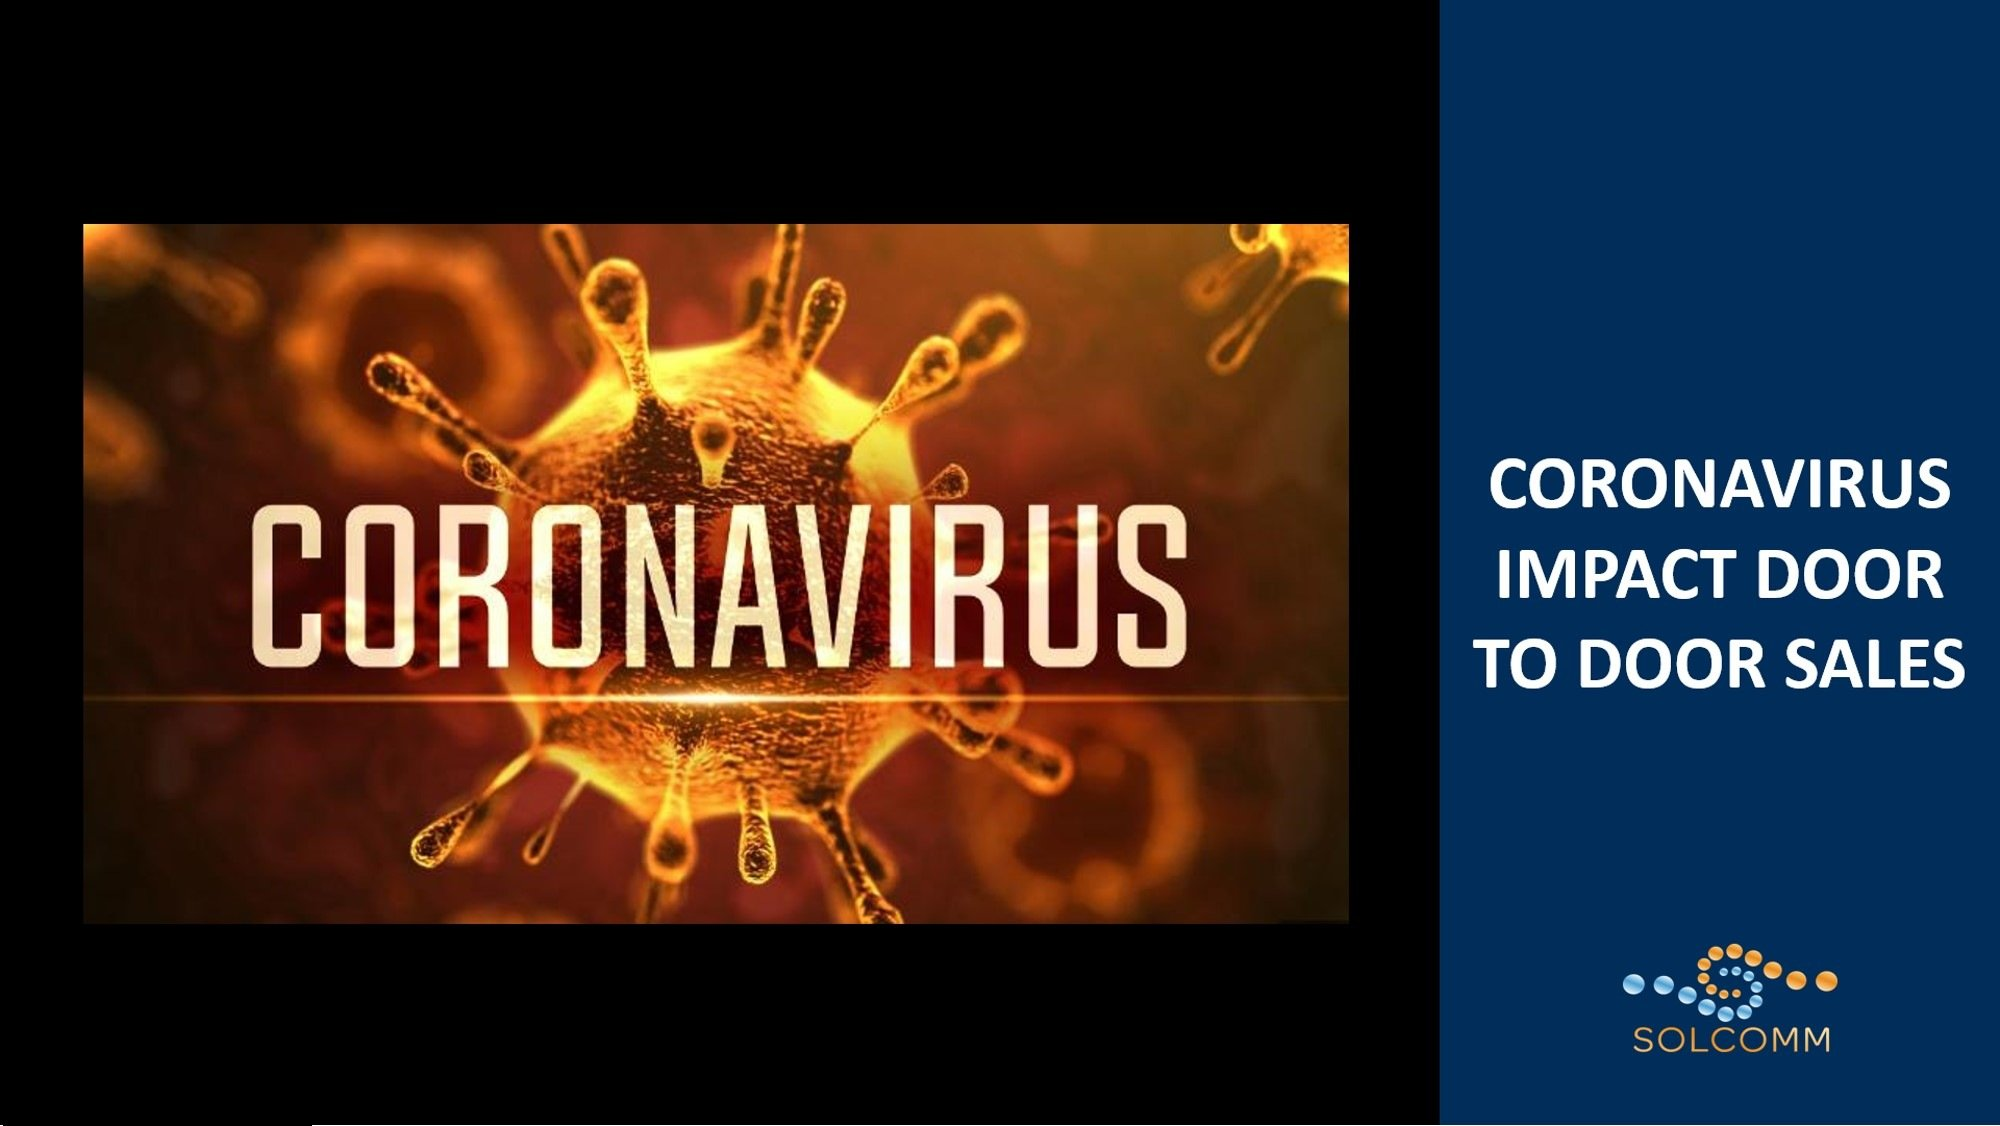 Coronavirus Impact Door to Door Sales